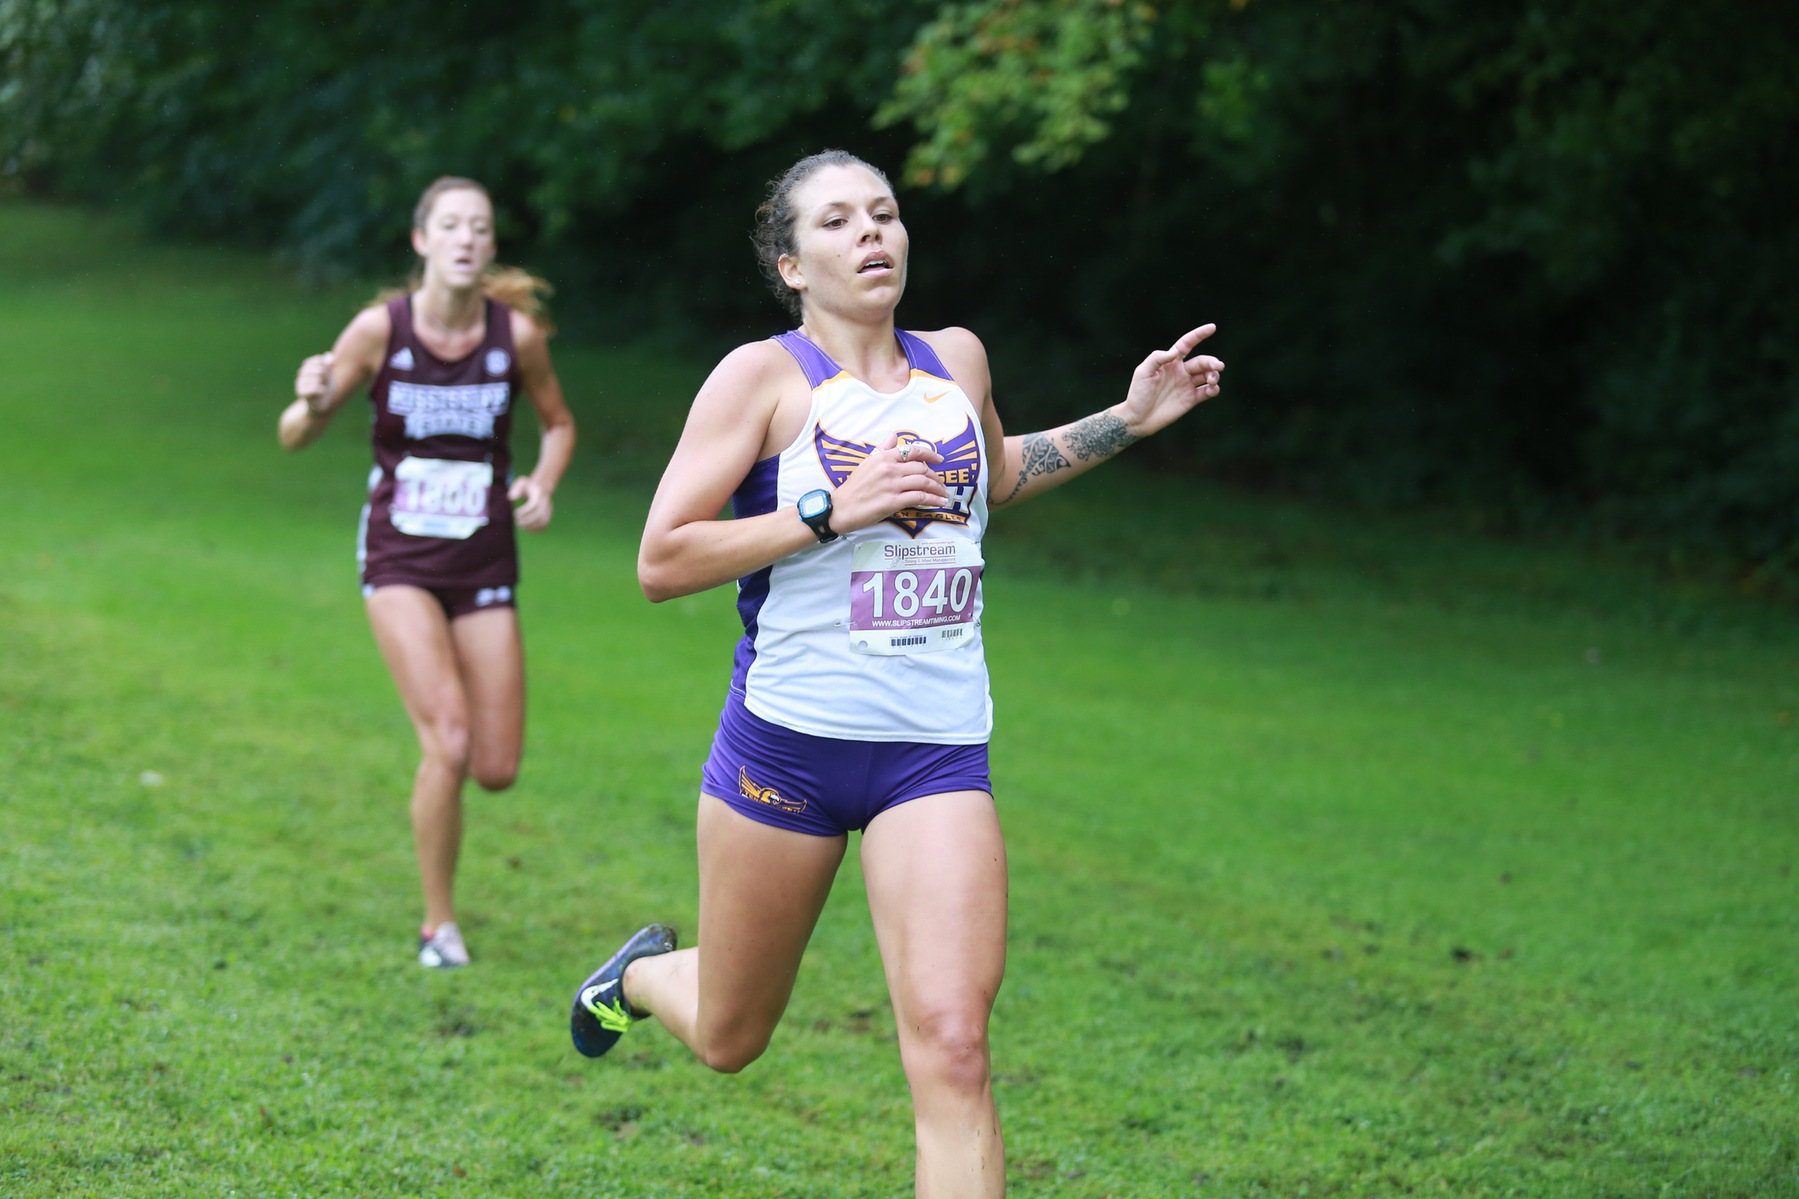 Boit repeat win highlights Golden Eagle Invitational, season opener